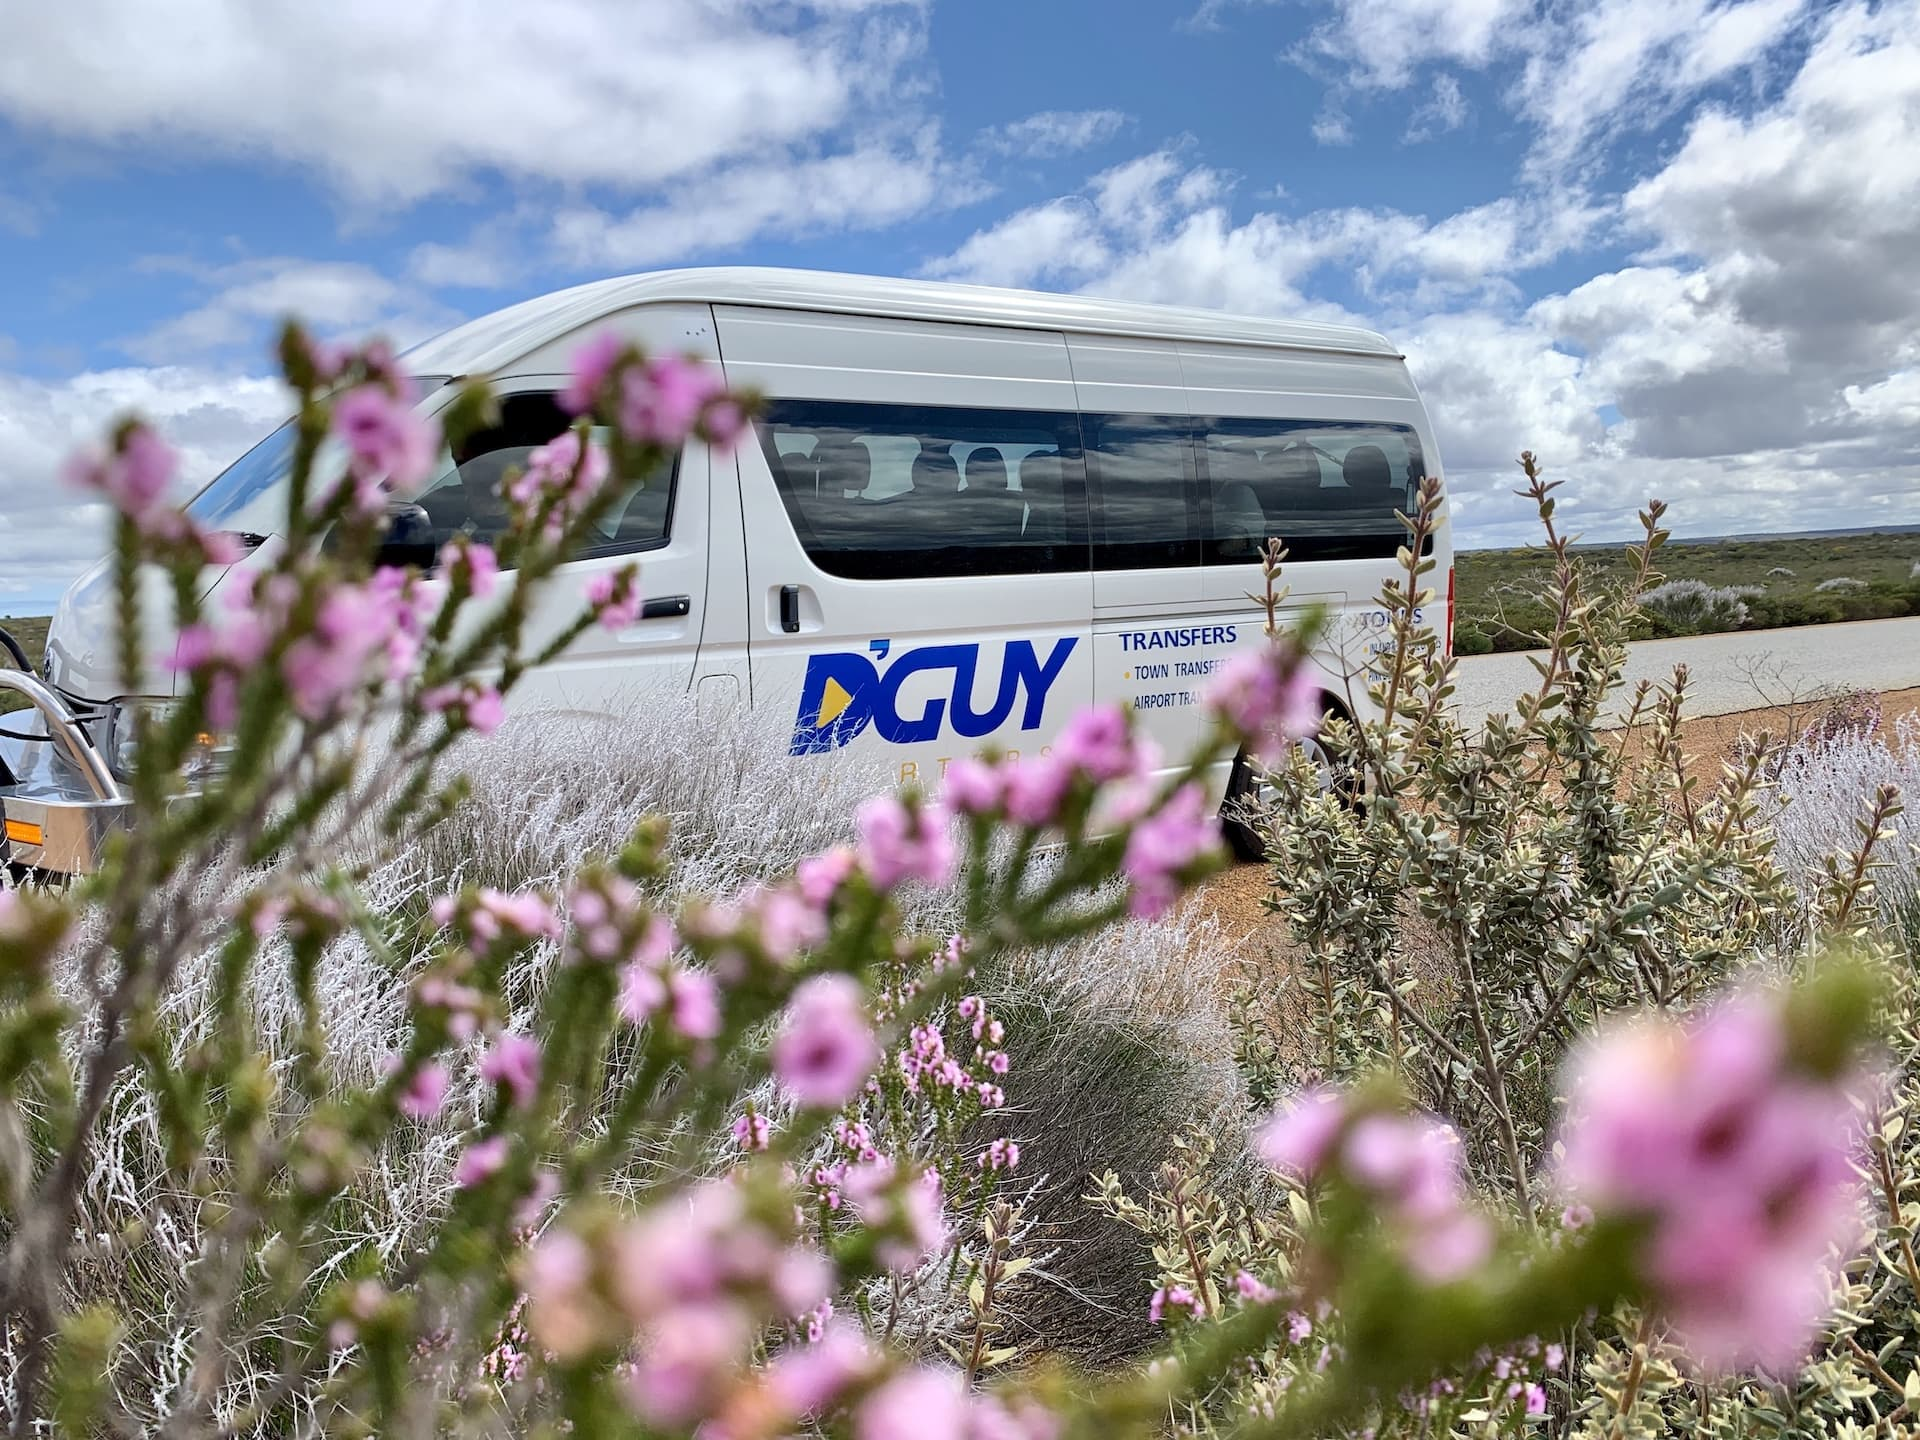 D'Guy van amongst wildflowers in Kalbarri